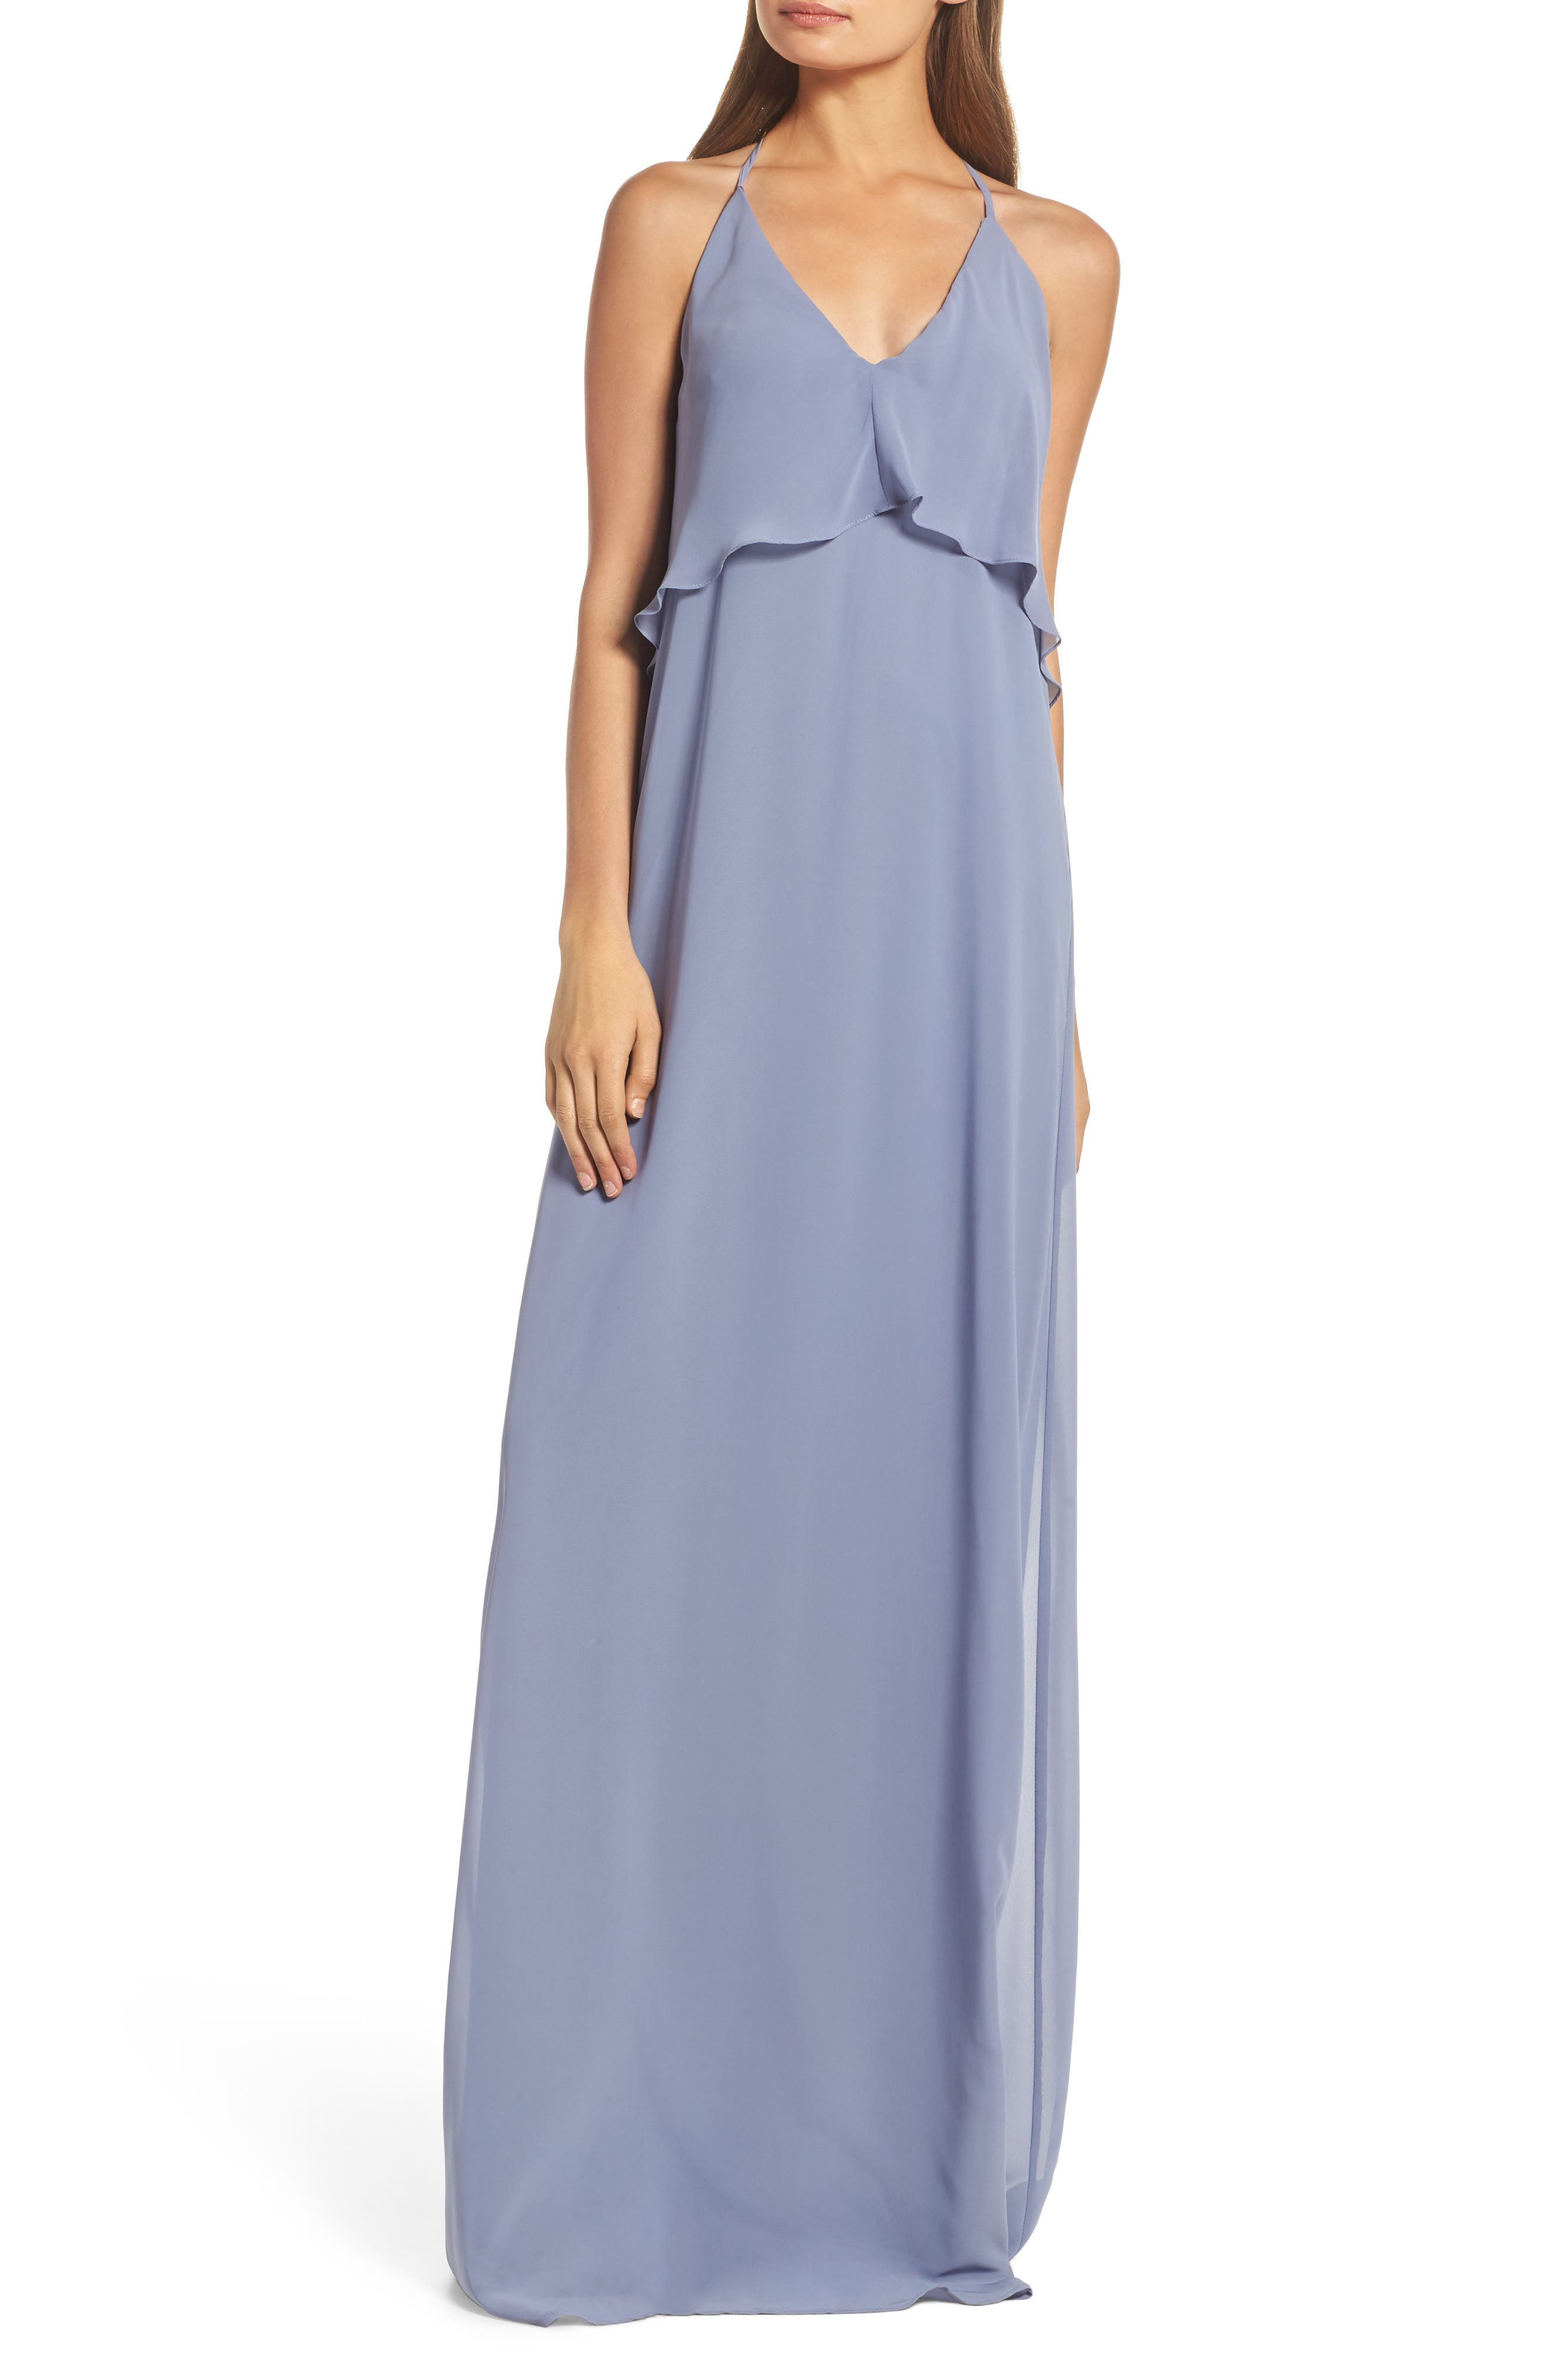 Alternate Image 1 Selected - nouvelle AMSALE Ruffle Halter Neck Chiffon Gown